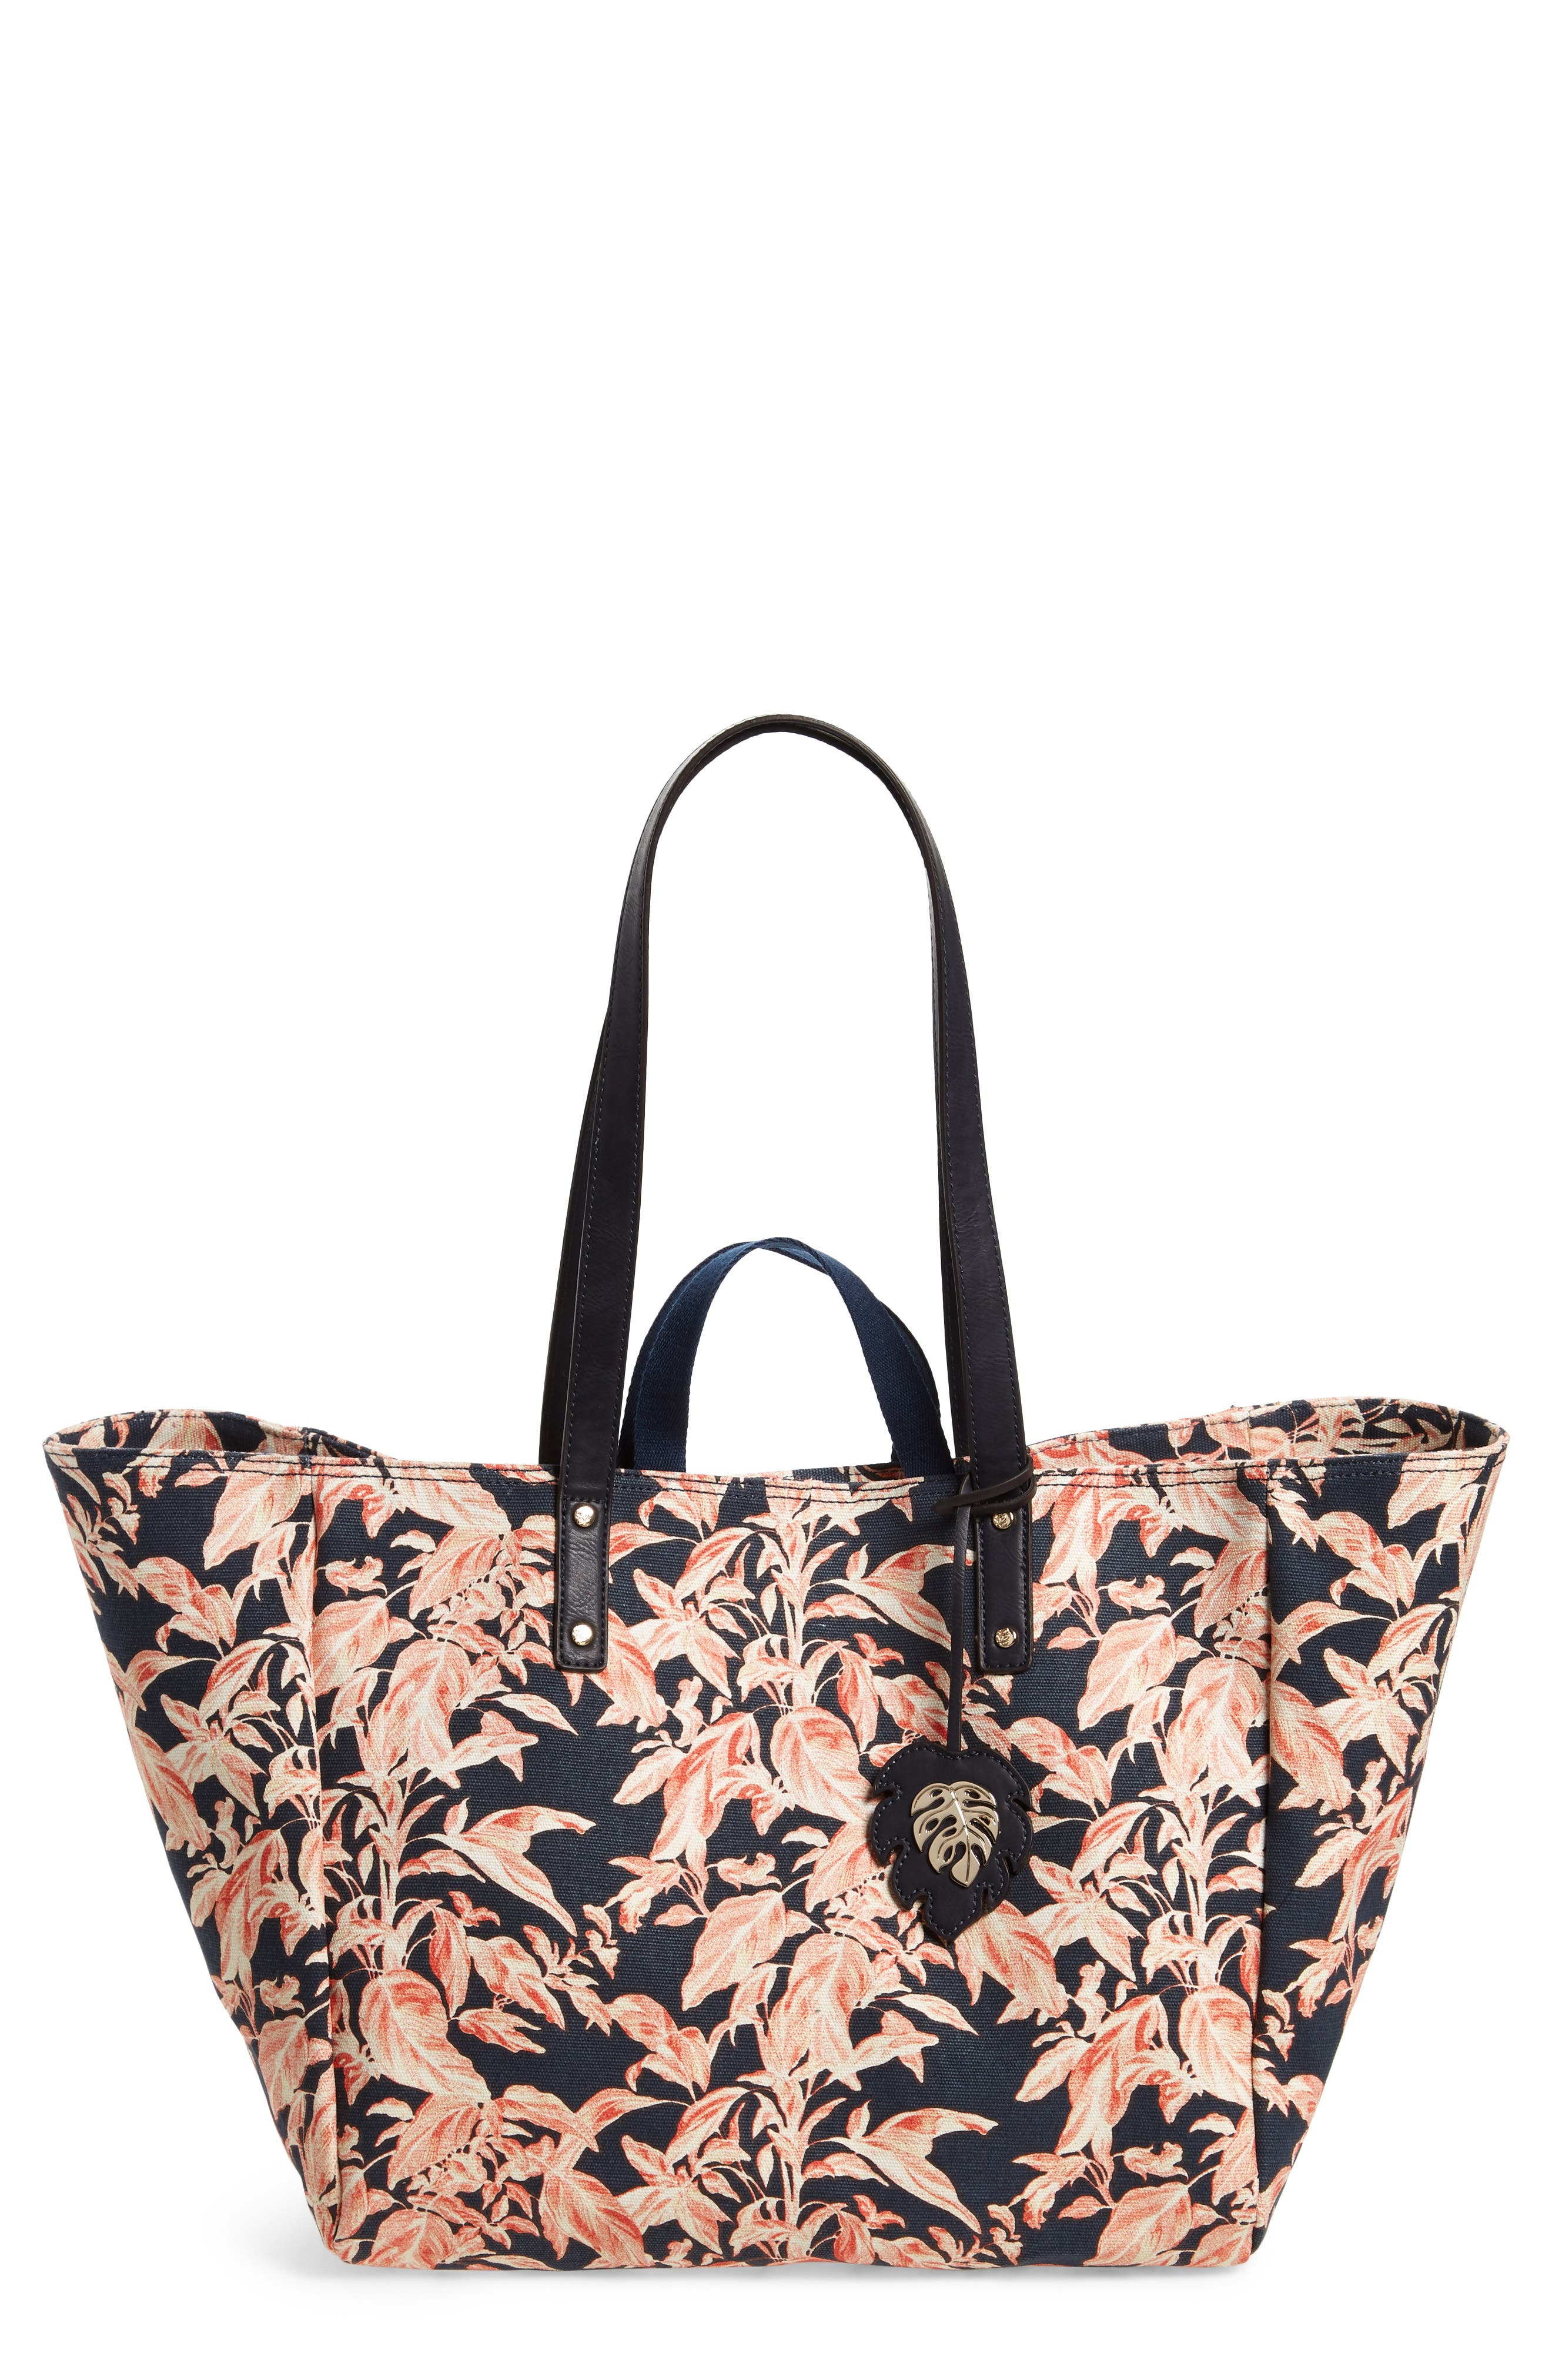 La Plancha Beach Tote,                             Main thumbnail 1, color,                             Navy